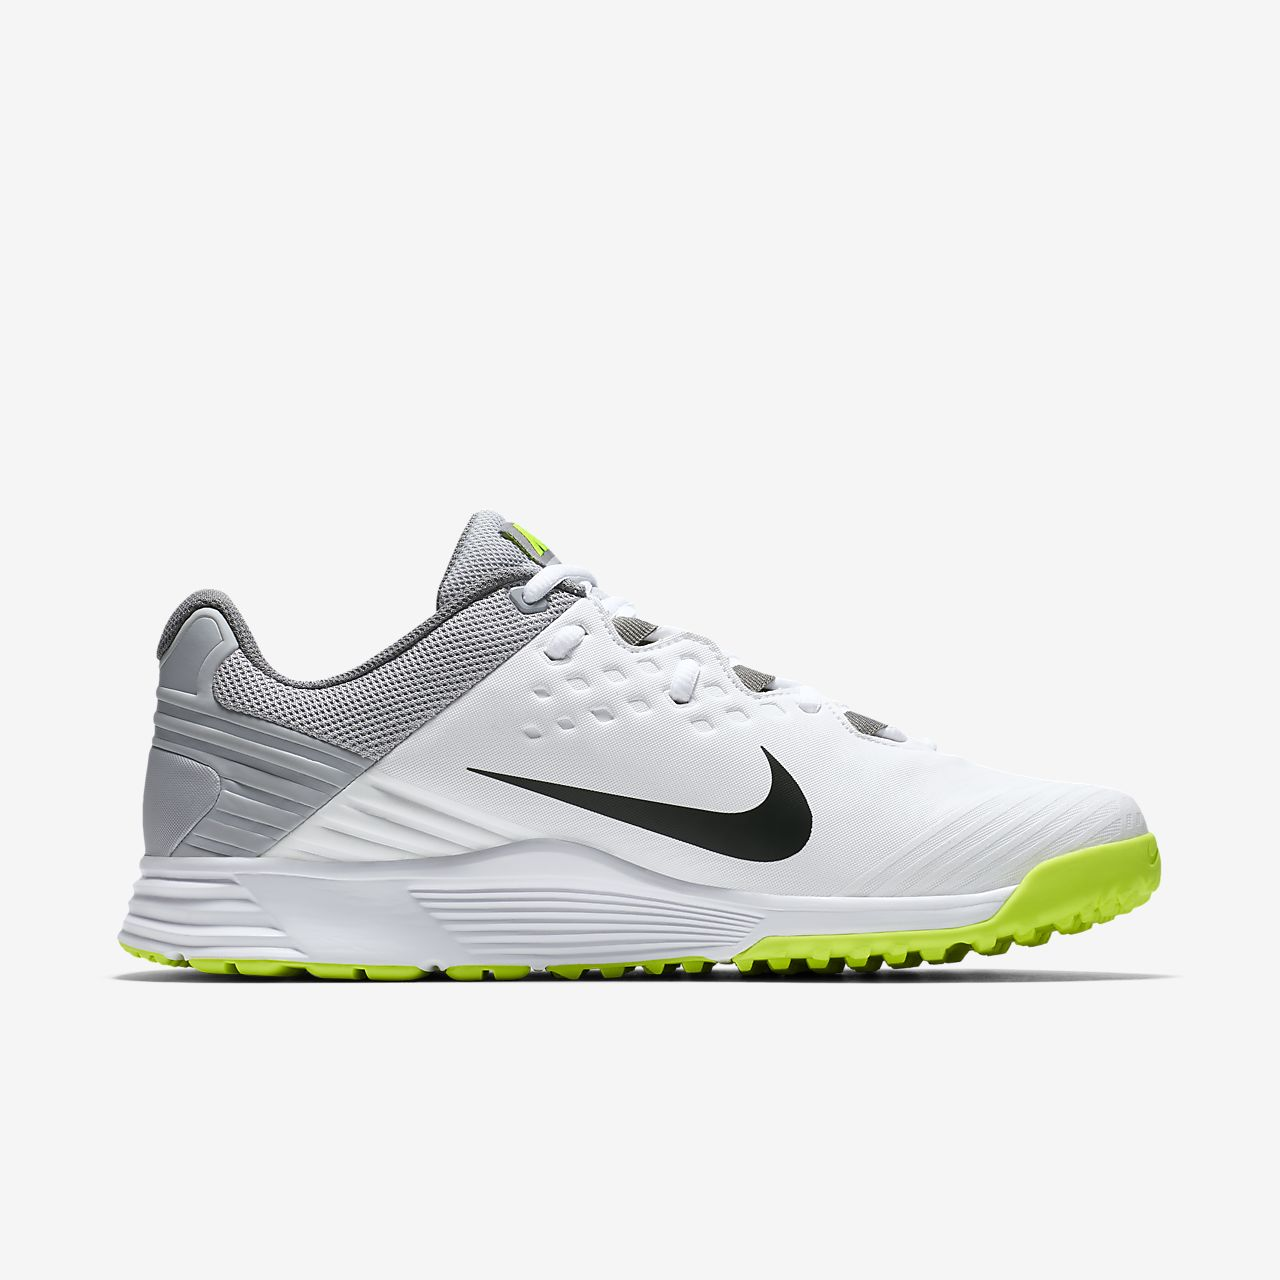 22d40807318b Nike Potential 3 Unisex Cricket Shoe. Nike.com MY